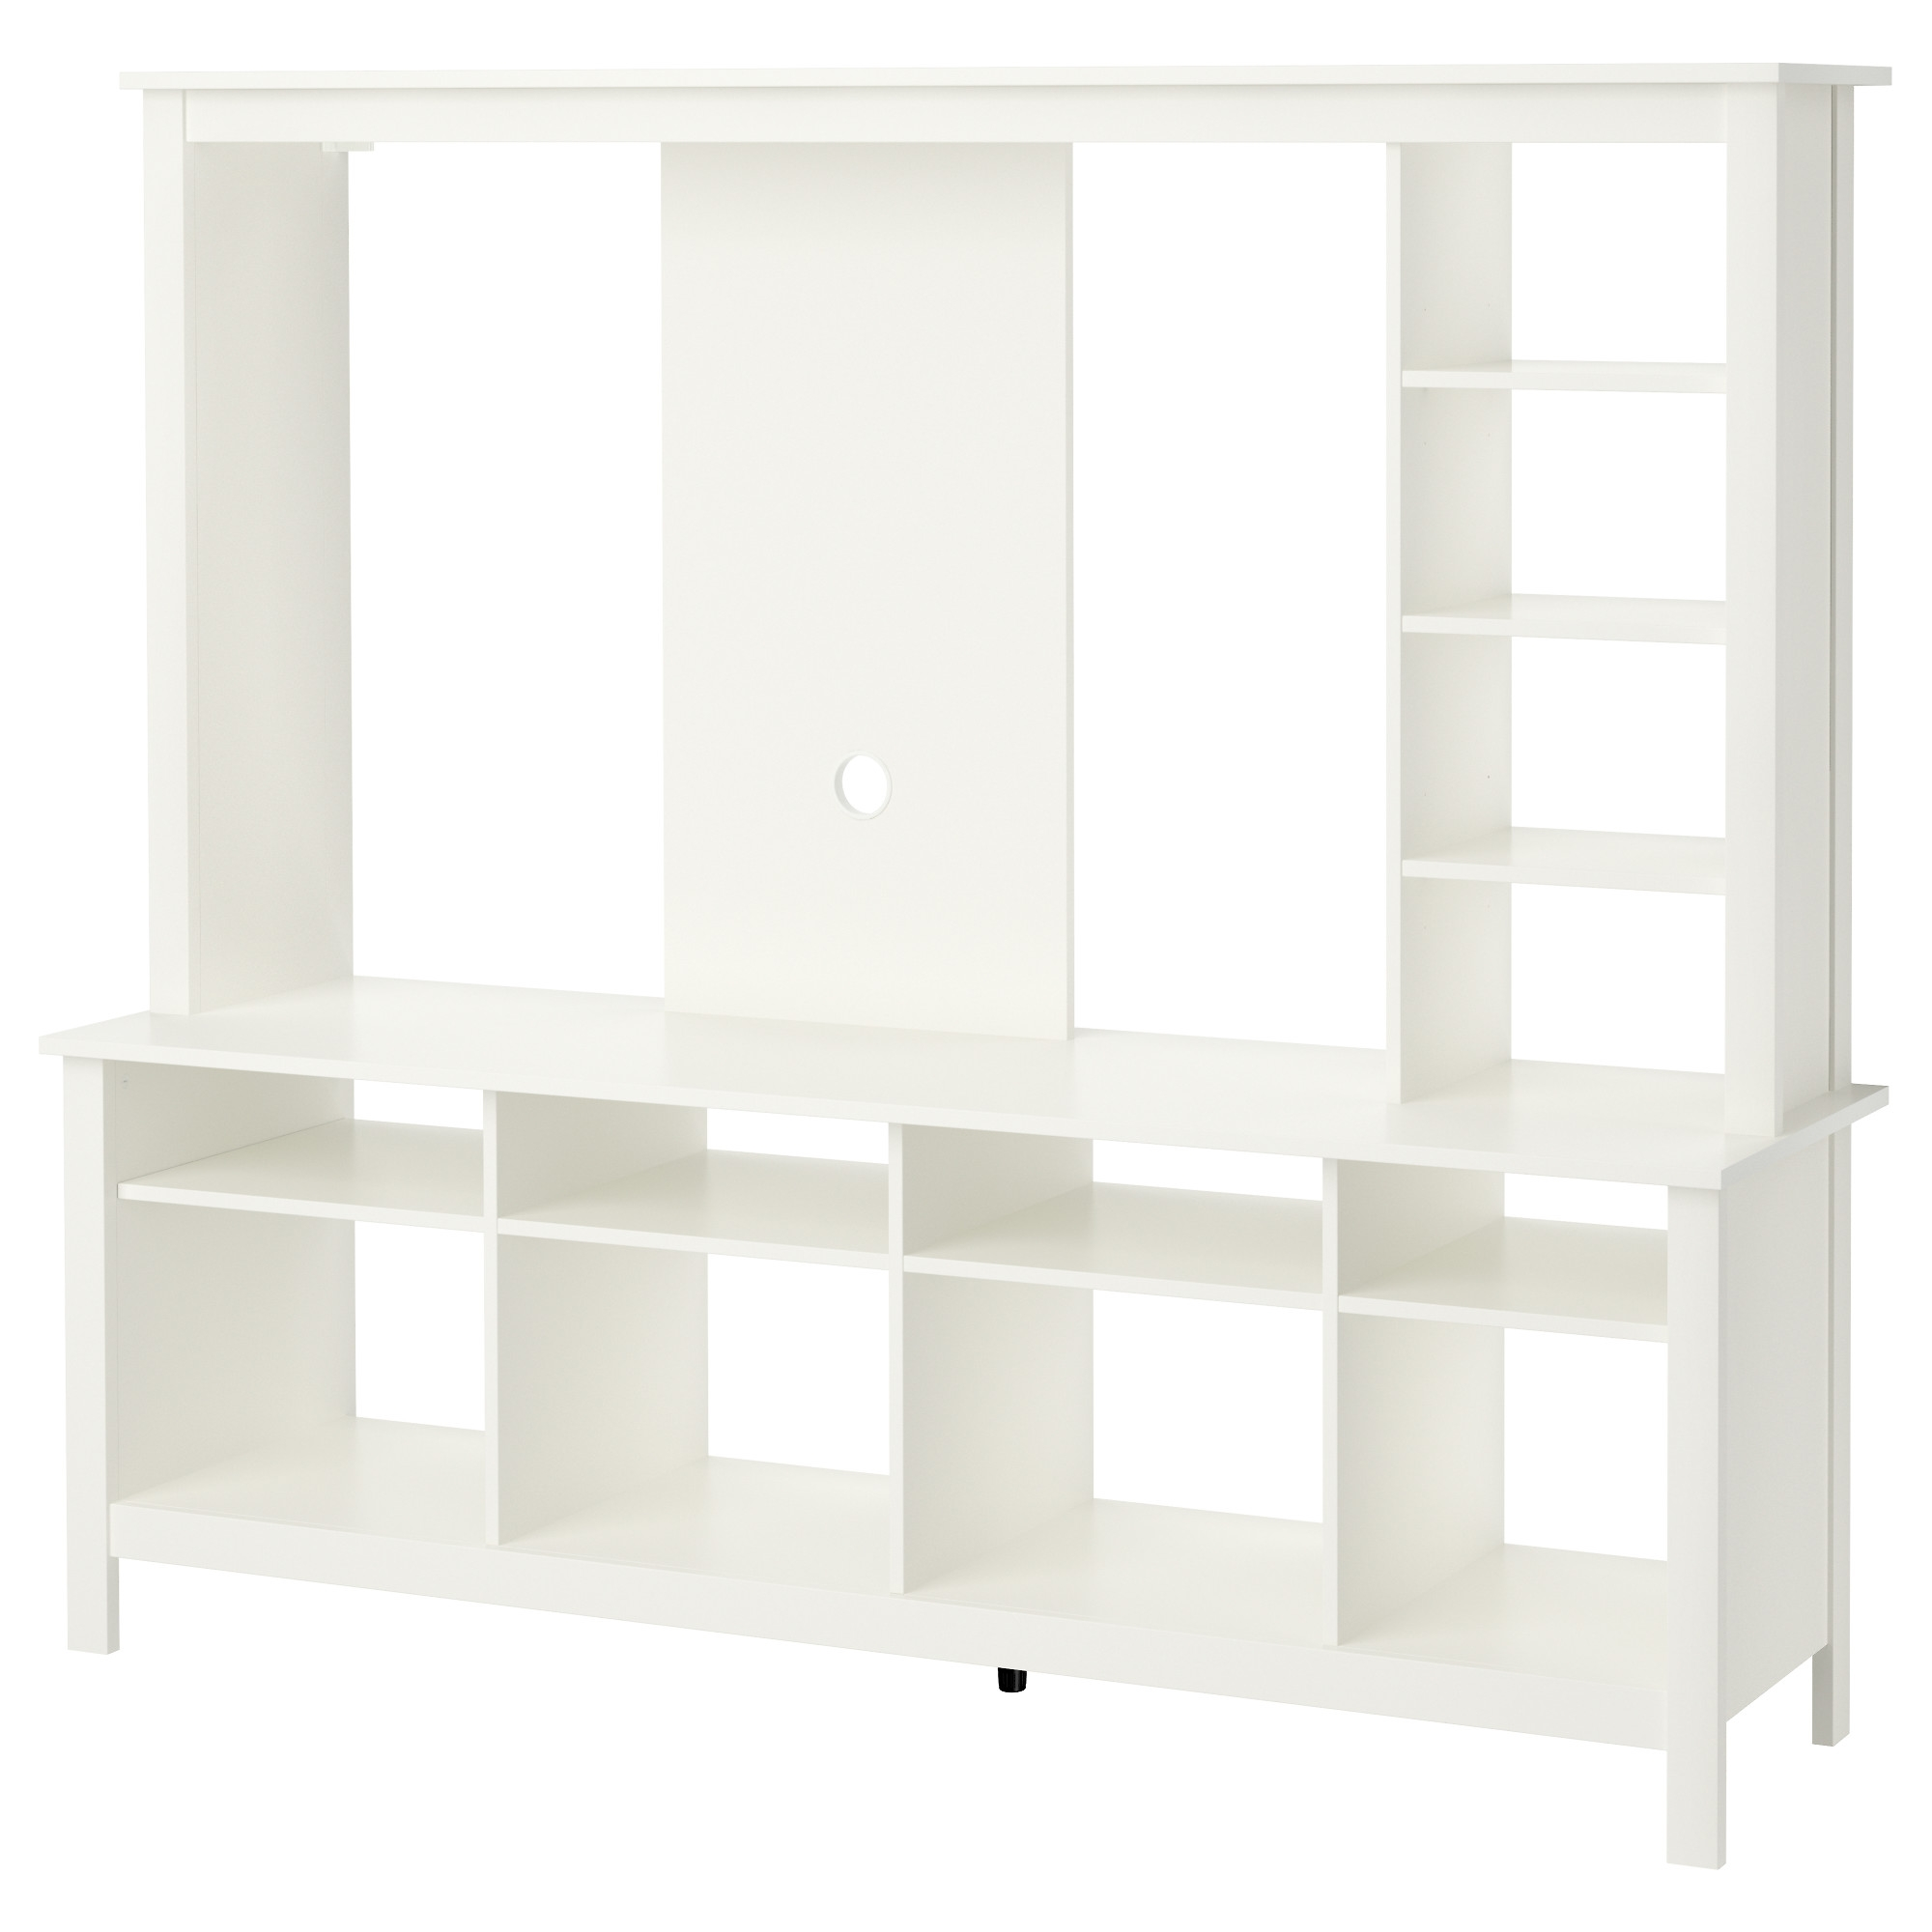 Tomns Tv Storage Unit White Ikea Regarding Tv Storage Unit (View 12 of 14)